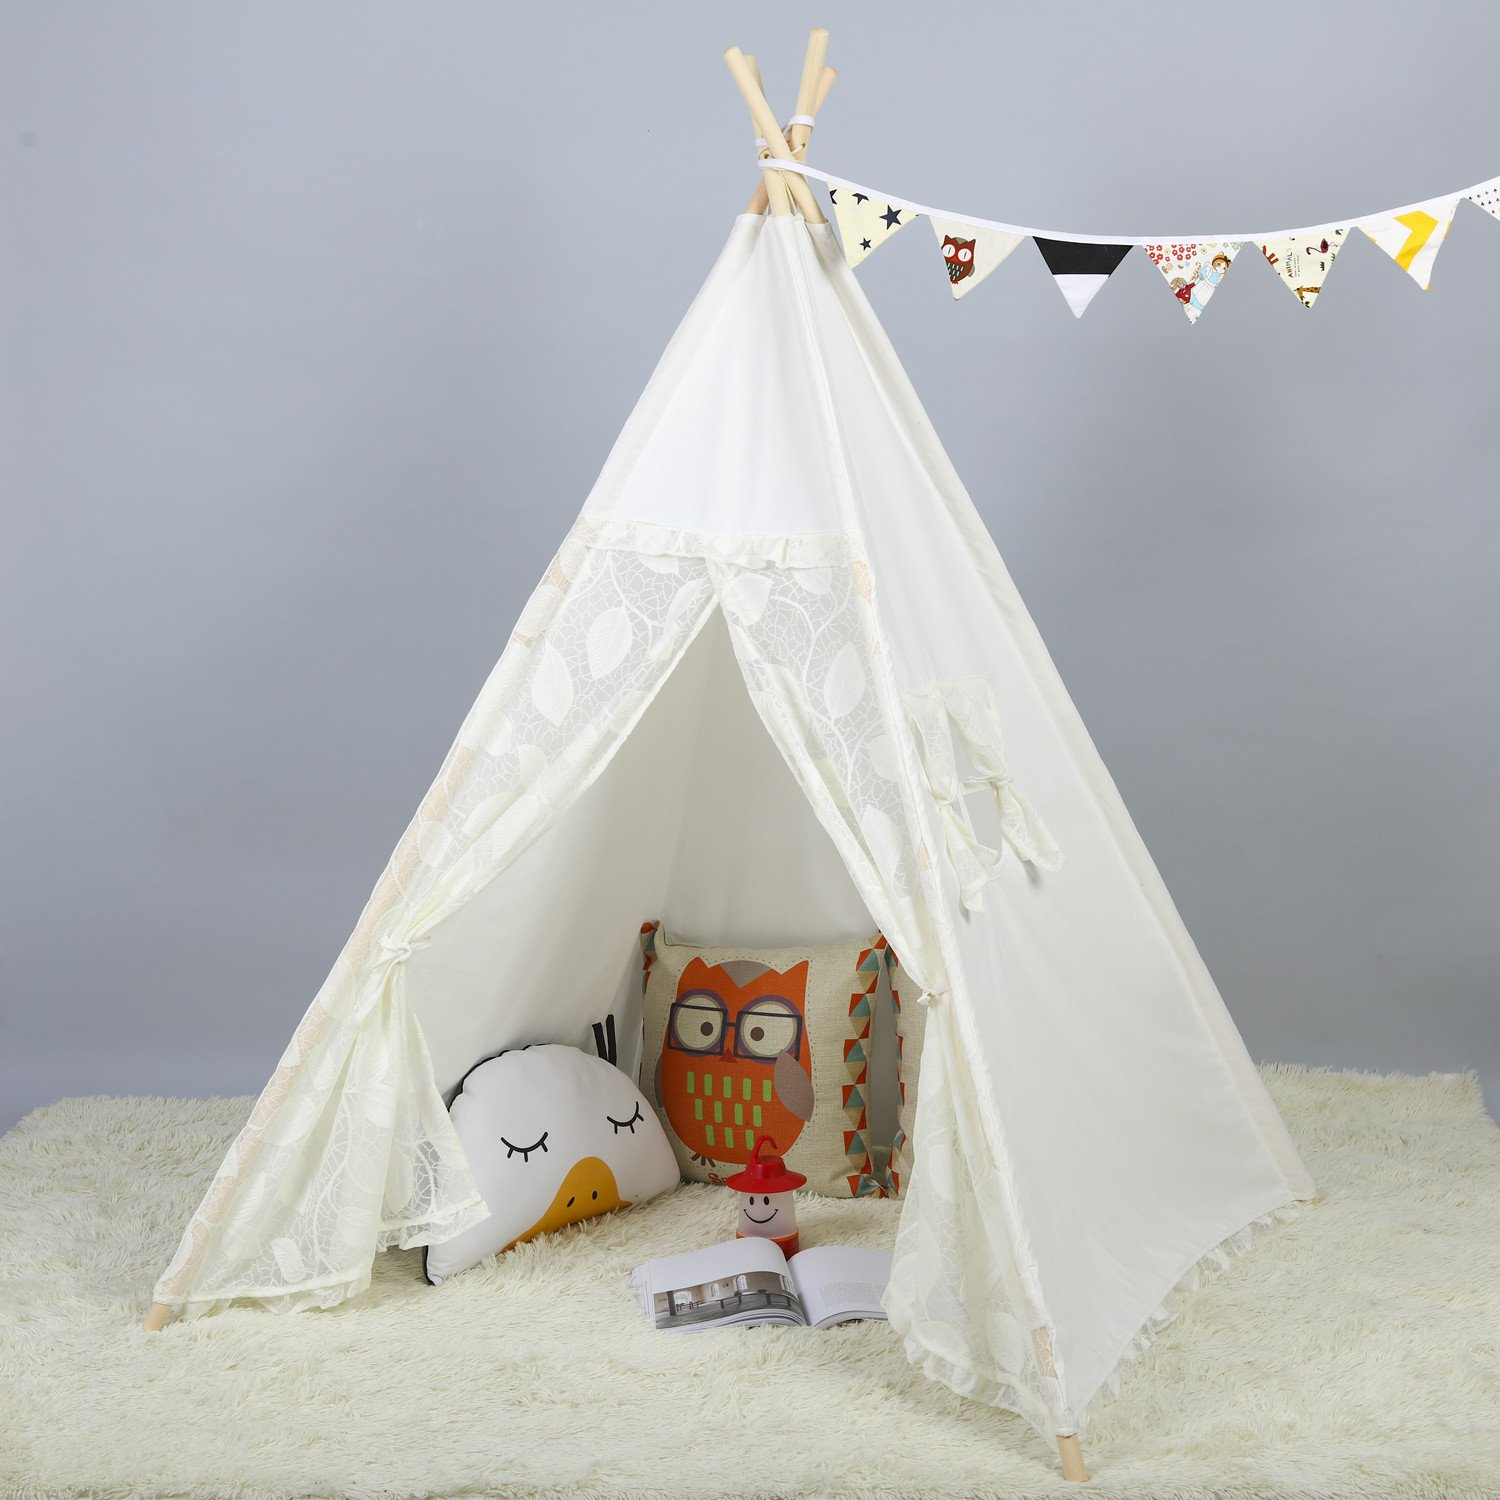 Steegic Portable Kids Cotton Canvas Teepee Indian Play Tent Playhouse - Lace